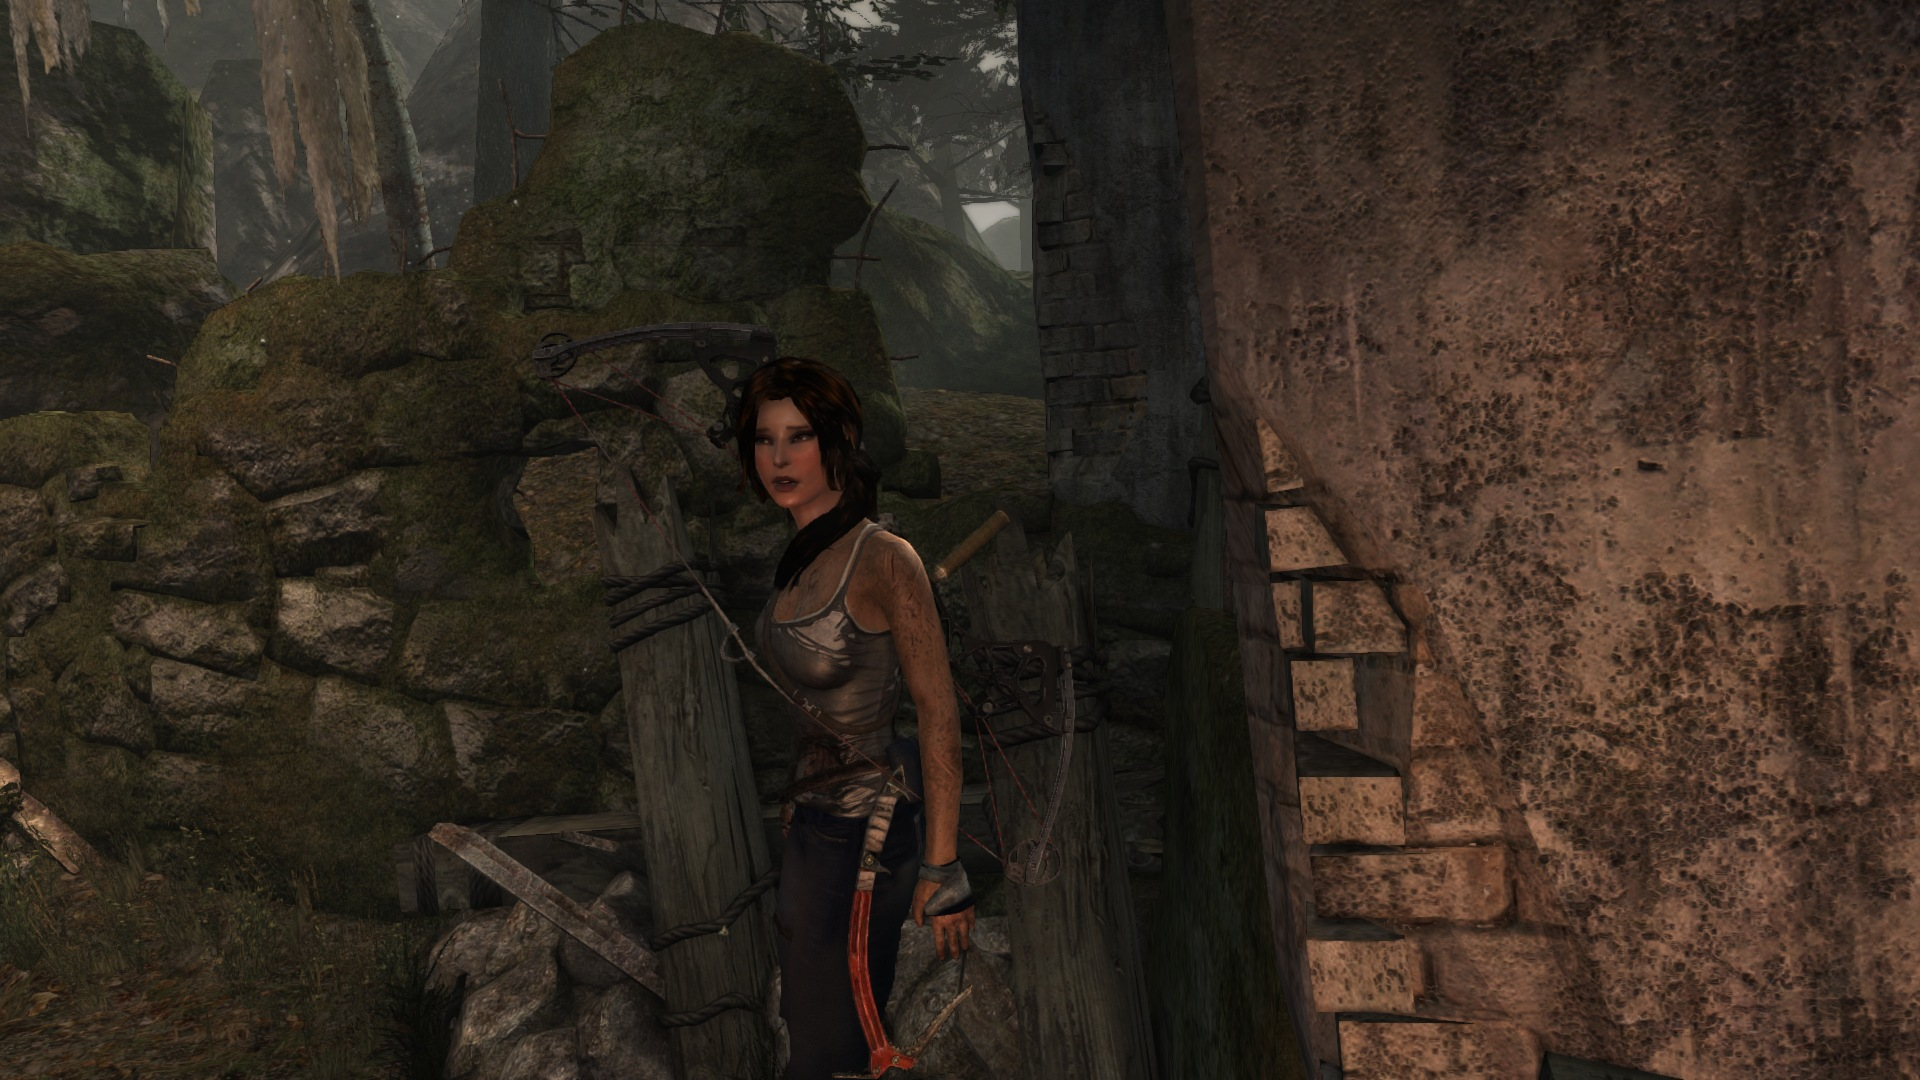 Tomb raider 2013 nude patch movies - 4 5